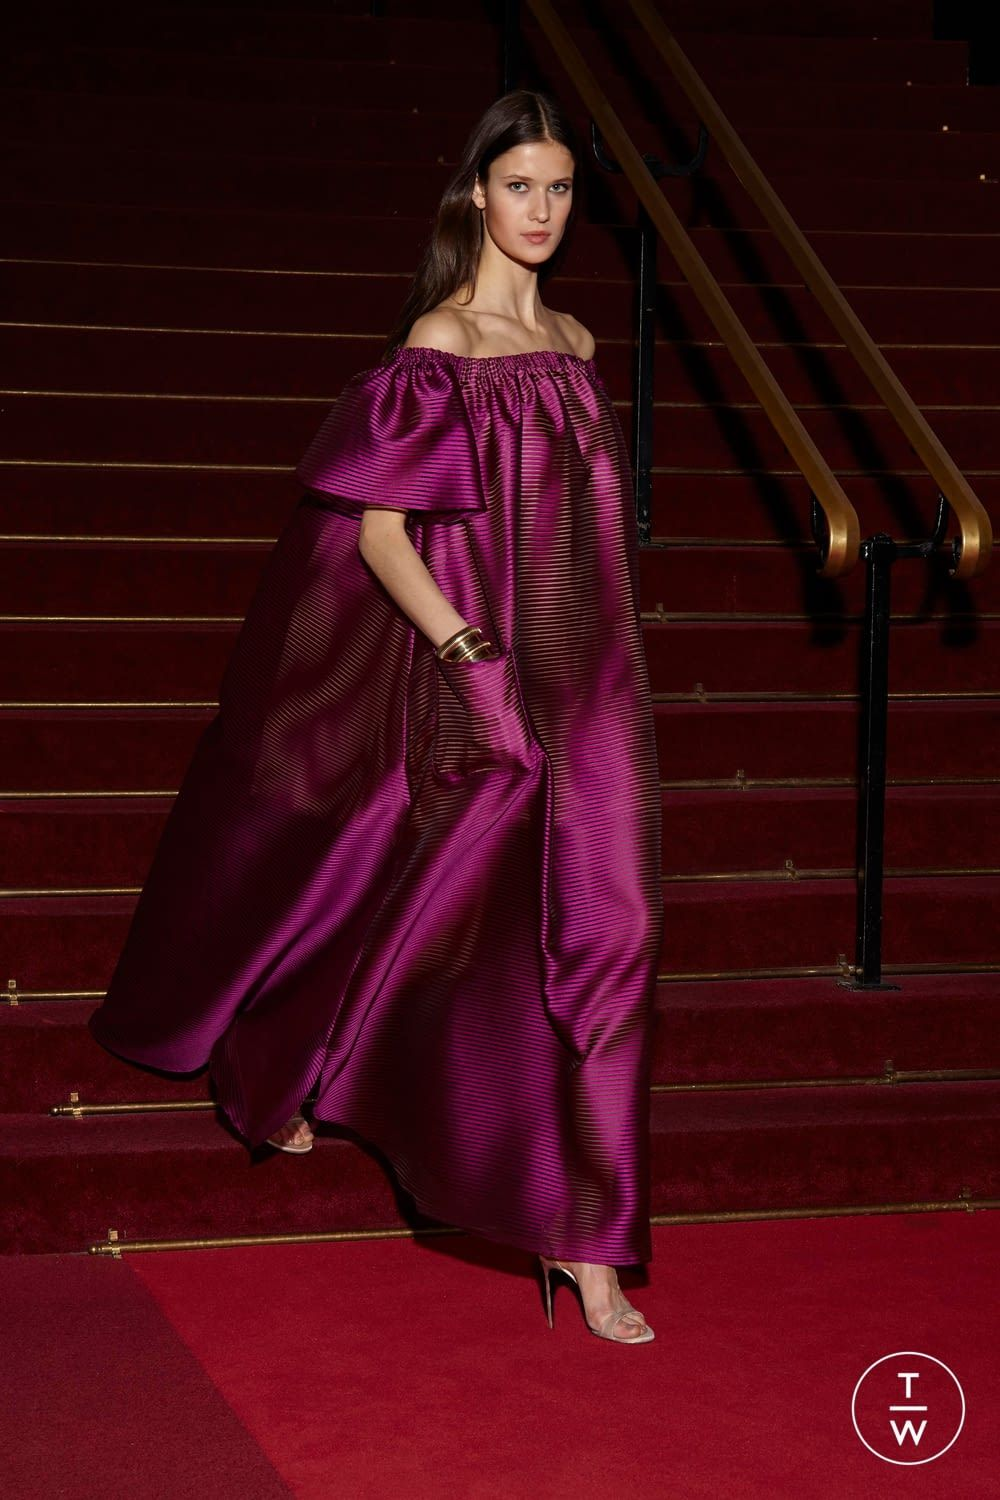 Alexis mabille resort look my s t y l e